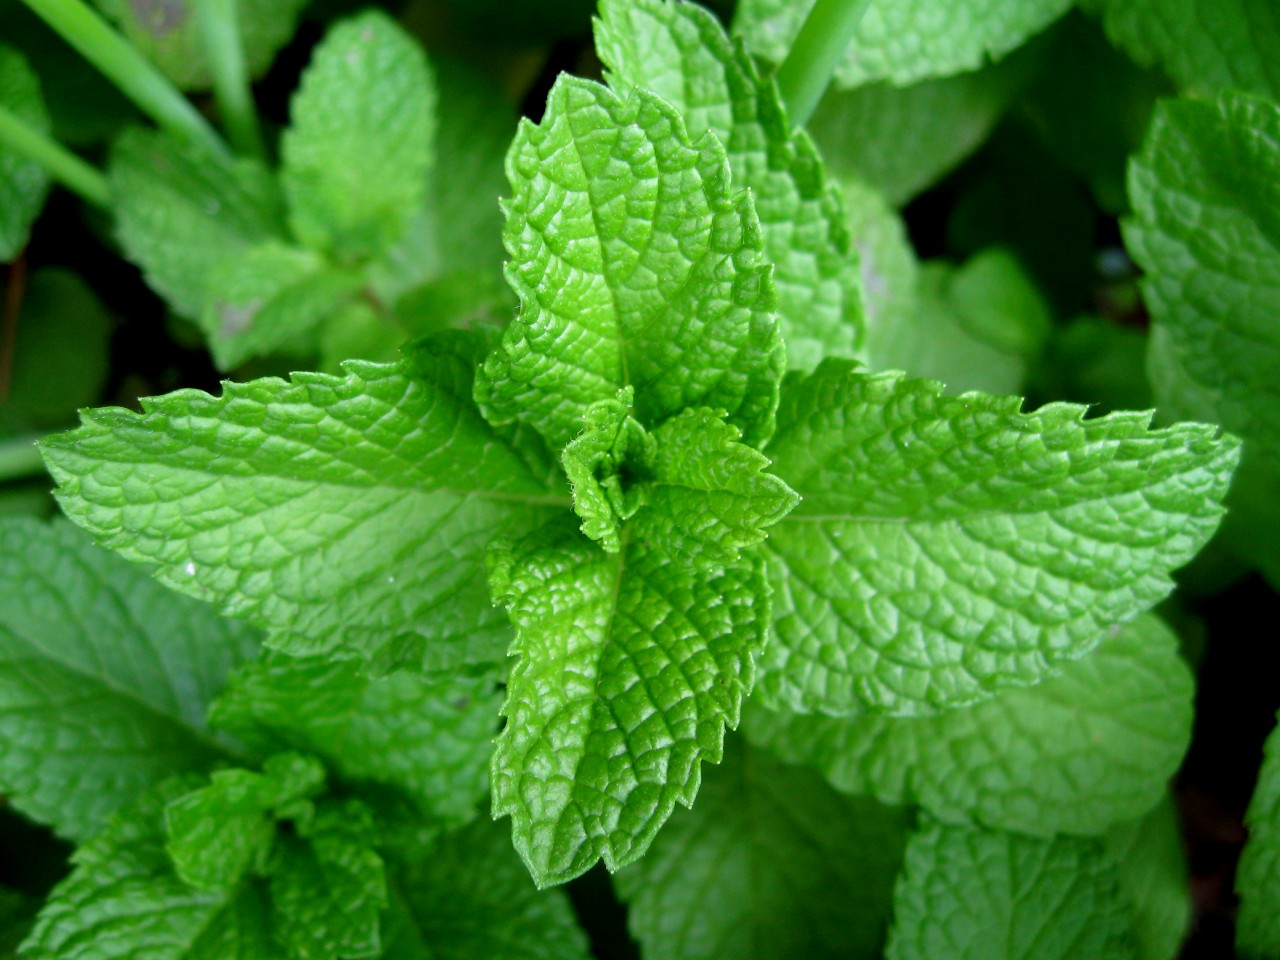 https://i0.wp.com/upload.wikimedia.org/wikipedia/commons/b/b0/Mint-leaves-2007.jpg